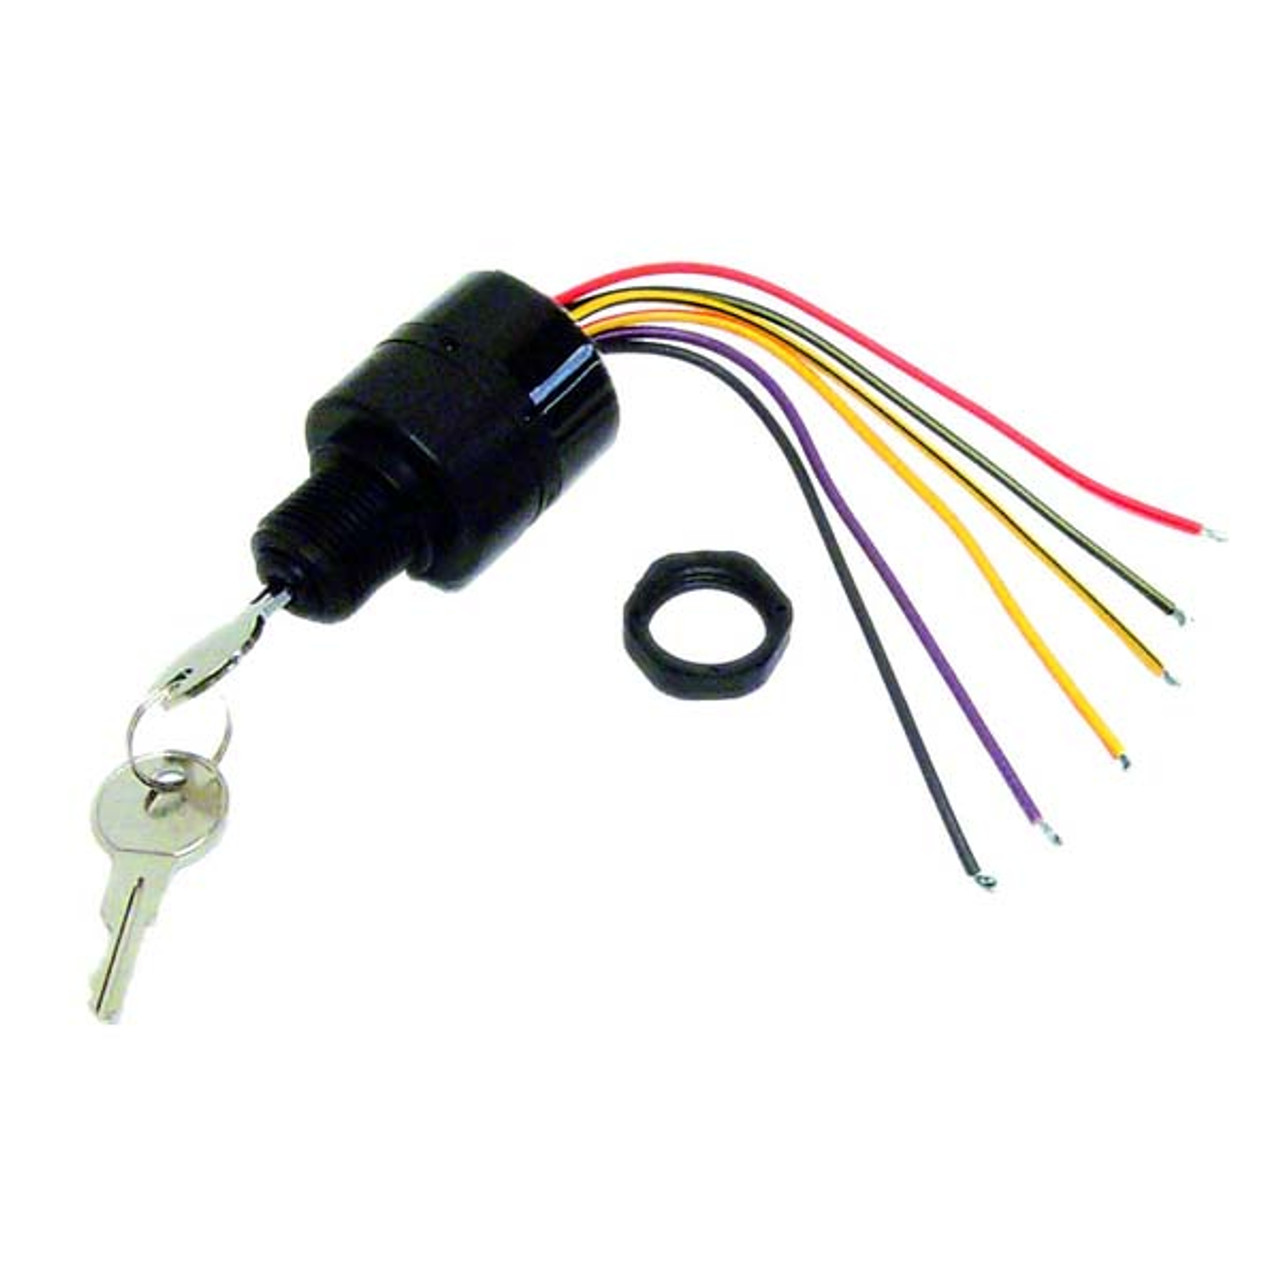 Sierra Mp41070-2 Ignition Switch Replaces 87-17009A5 on hei distributor diagram, 4 wire ignition switch diagram, mallory ignition wiring diagram, msd 6al box wiring diagram, msd ignition wiring diagram, mallory comp 9000 distributor diagram, ford ignition wiring diagram, hei module wiring diagram, interior wiring diagram, unilite distributor parts diagram, electronic ignition diagram, gm hei ignition wiring diagram,